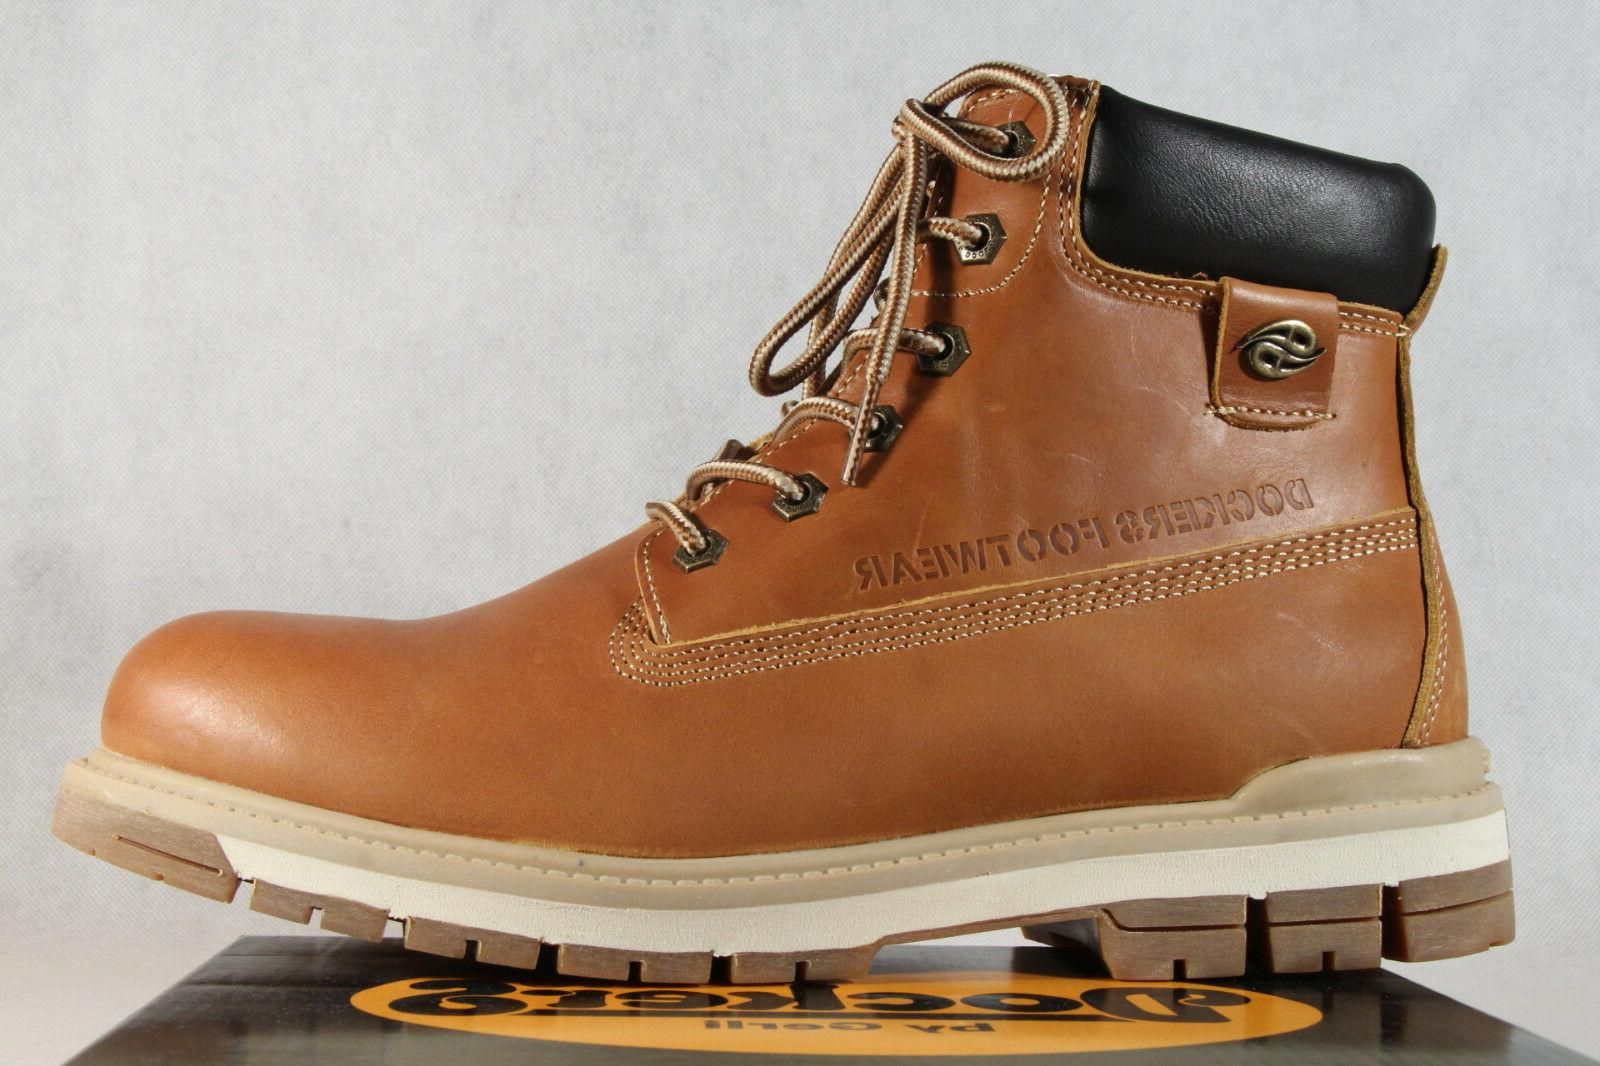 Dockers Boots Winter Boots Leather New